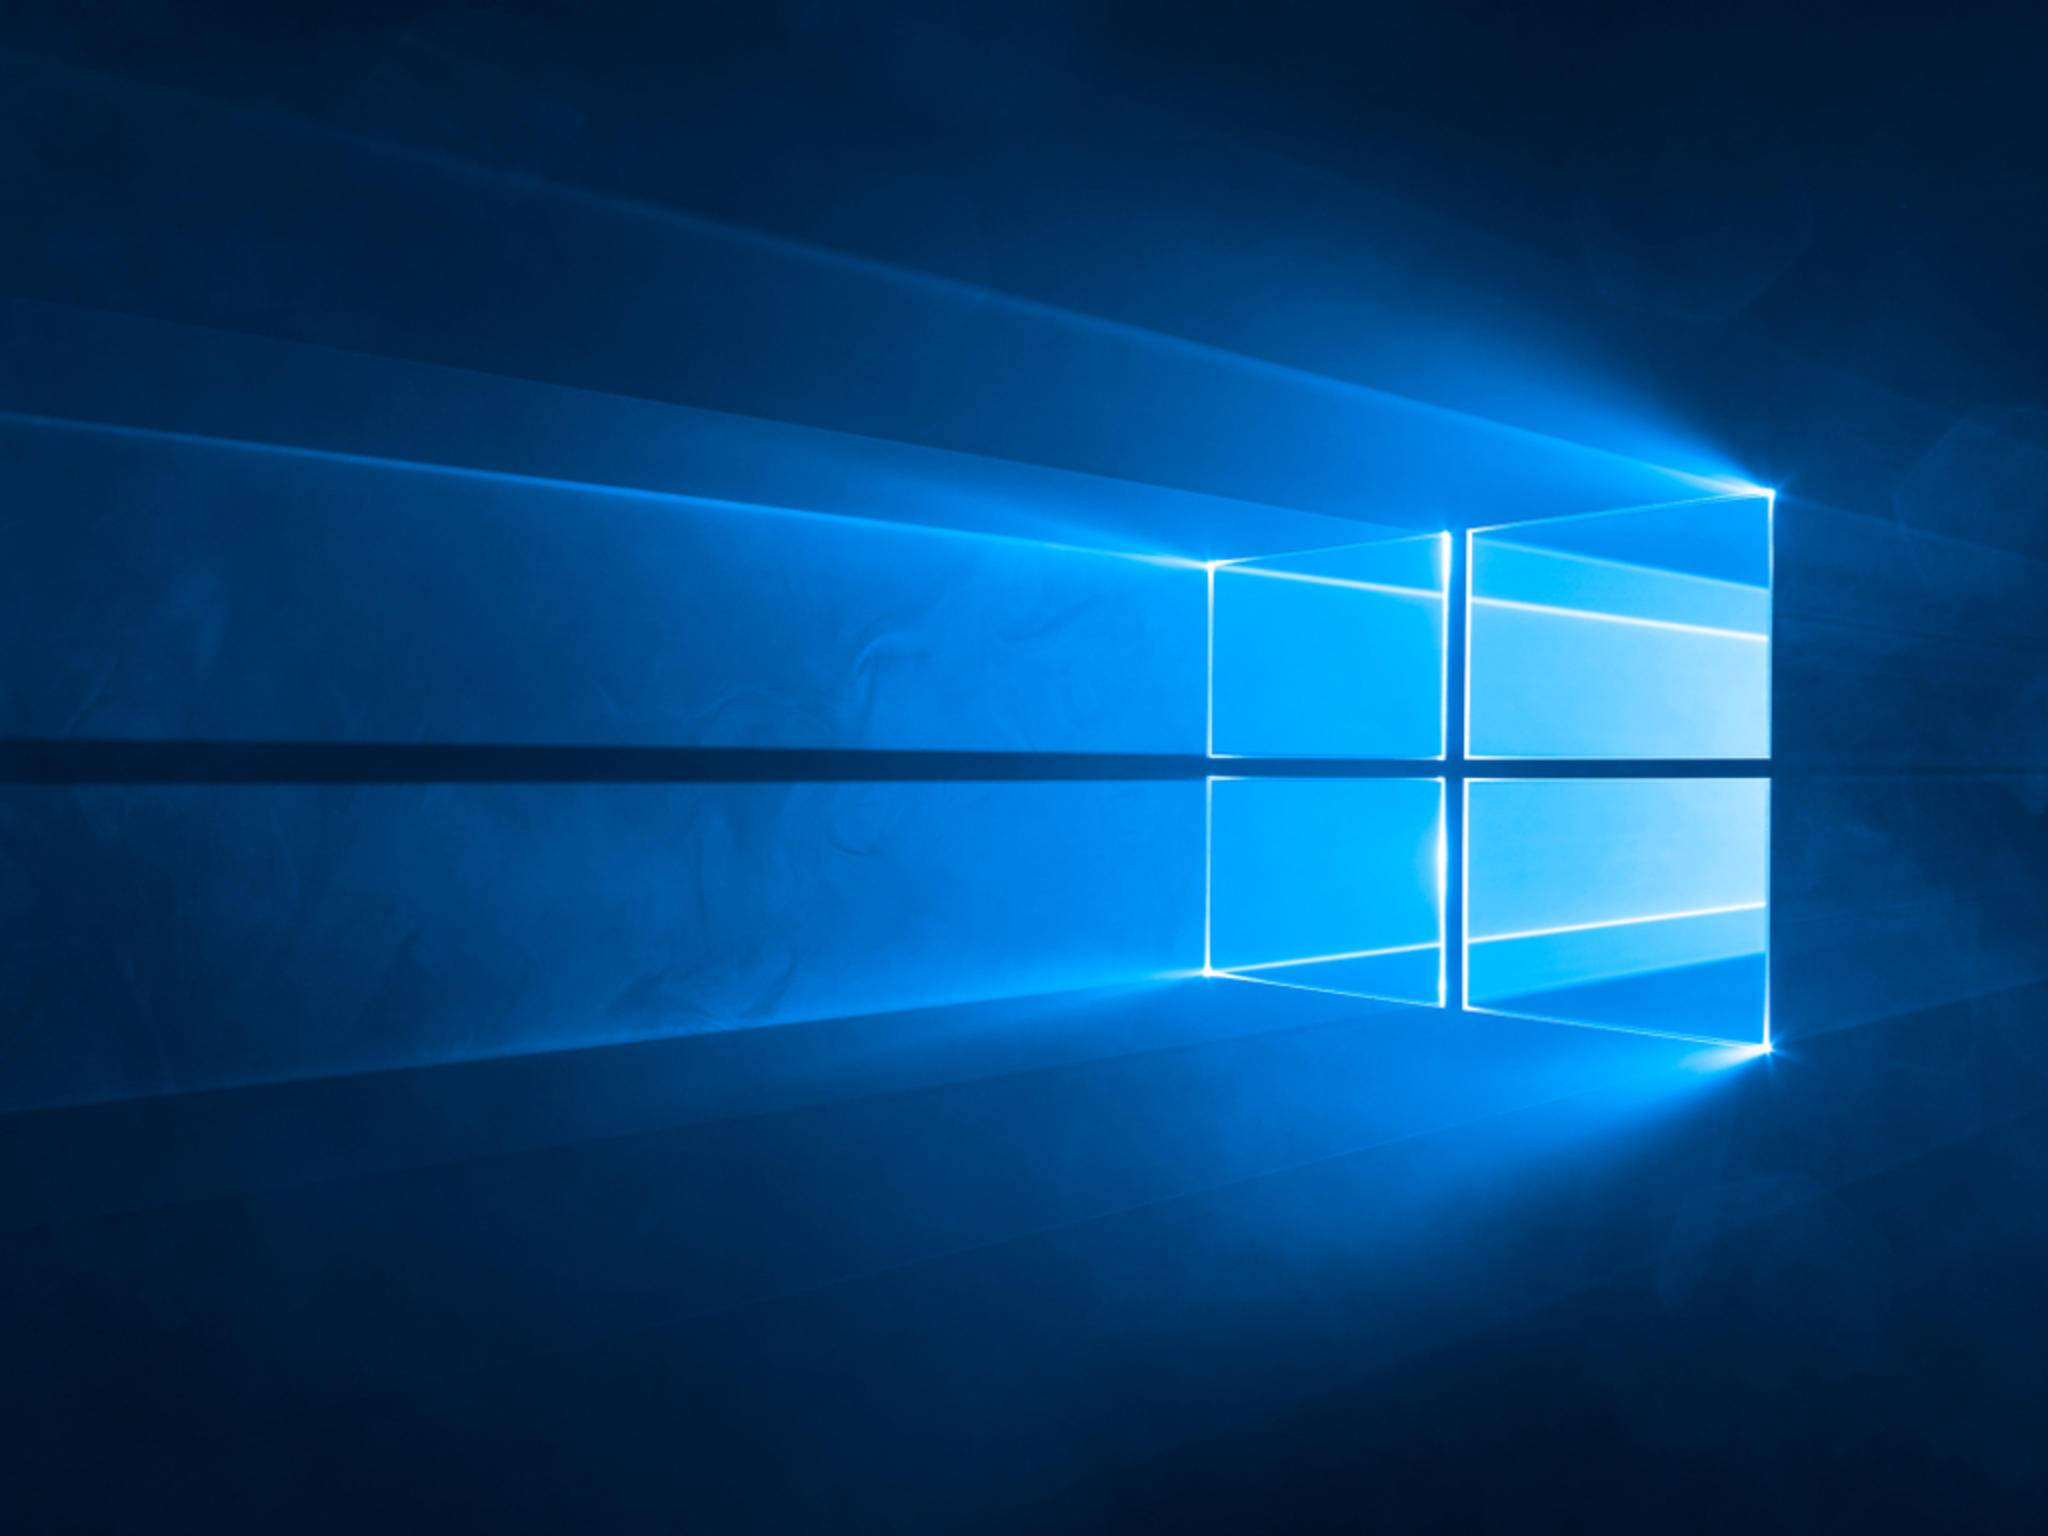 Windows 10 kommt am 29. Juli.